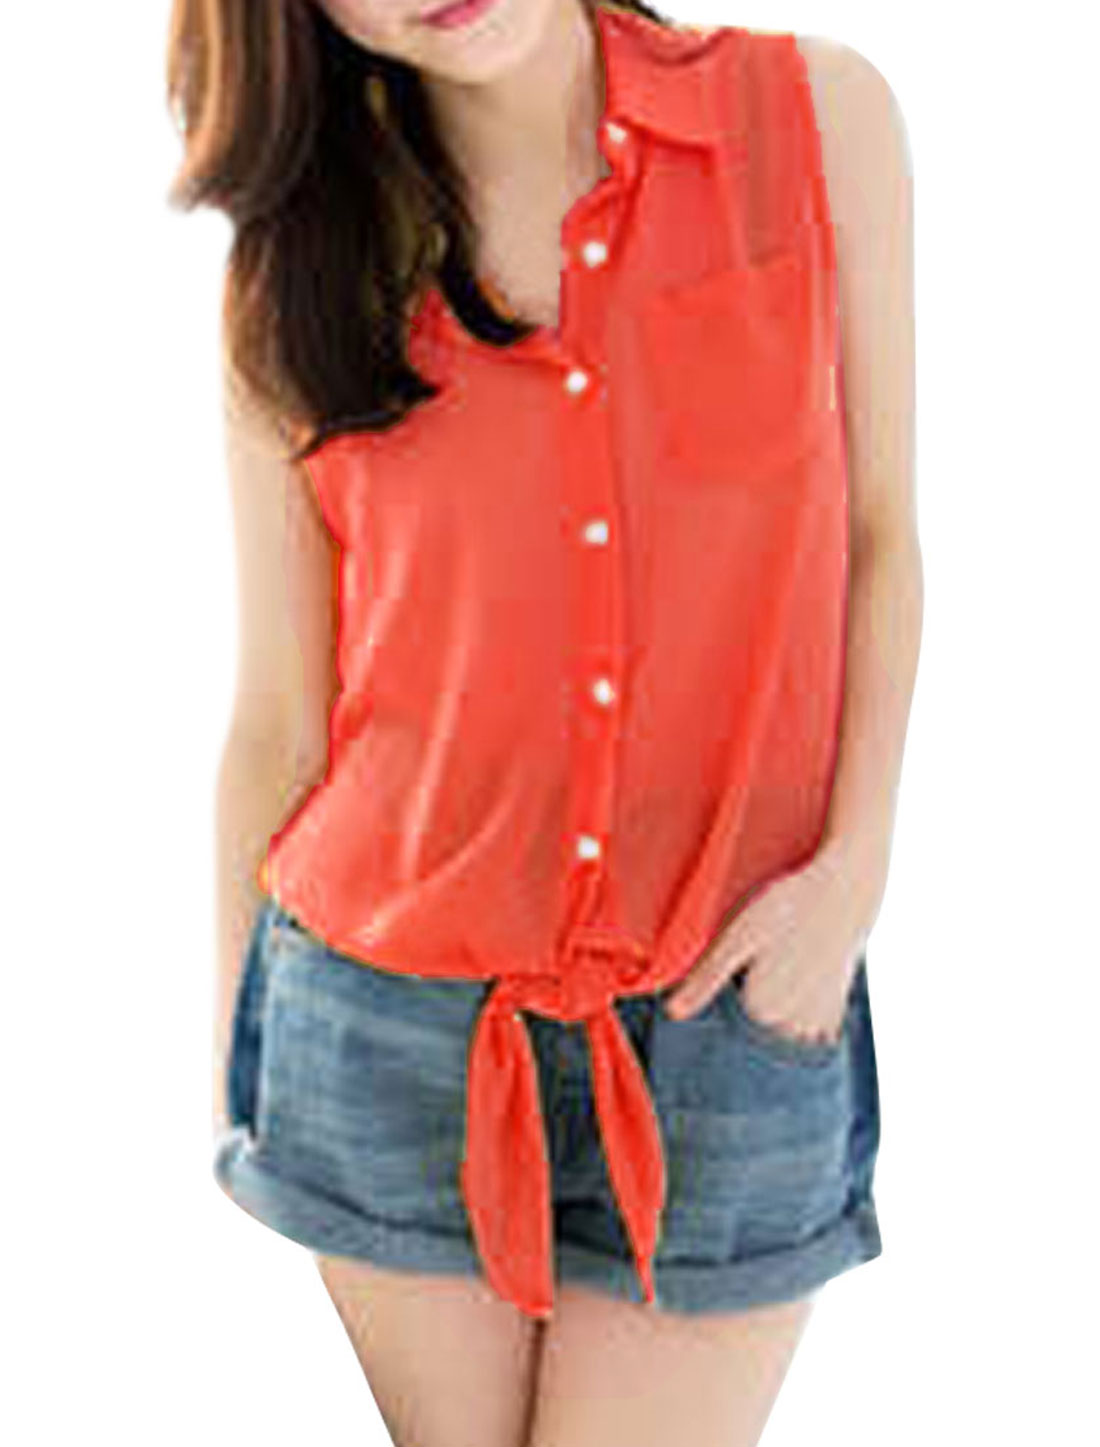 Ladies Point Collar Single Breasted Sleeveless Top Shirt Fluorescein Red S